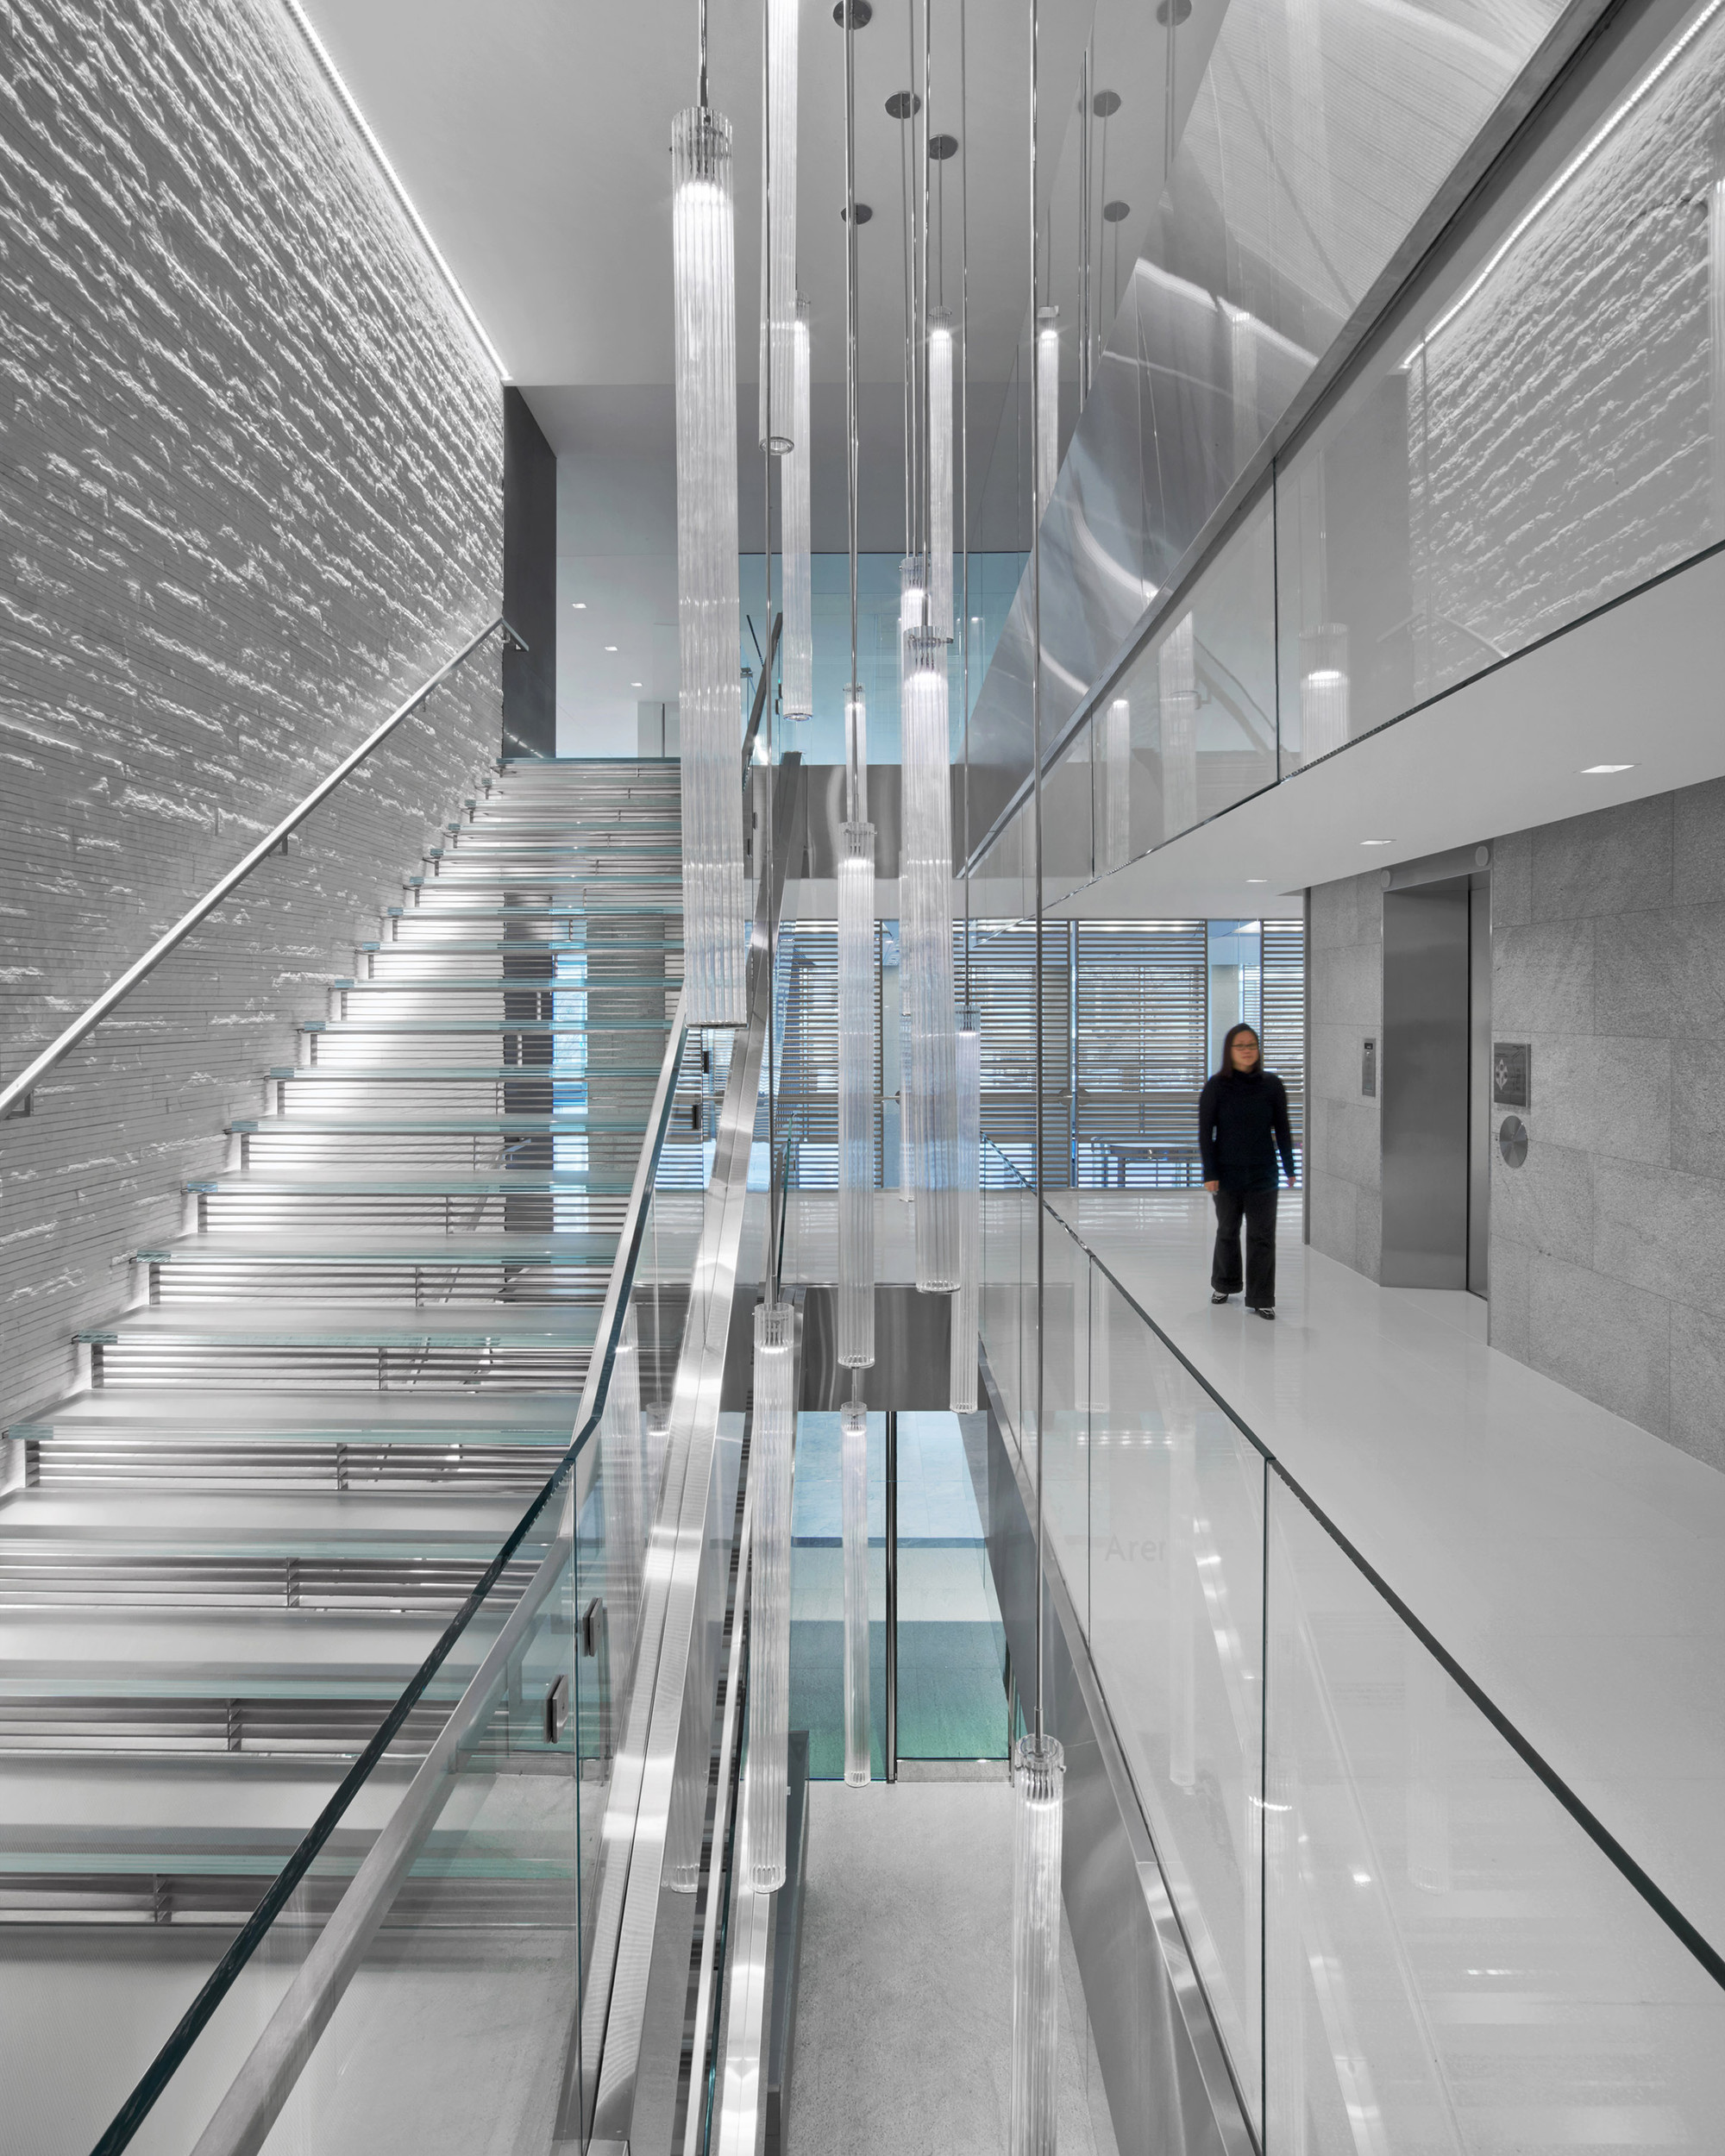 2015 AIA Institute Honor Awards For Interior ArchitectureArent Fox STUDIOS Architecture Image